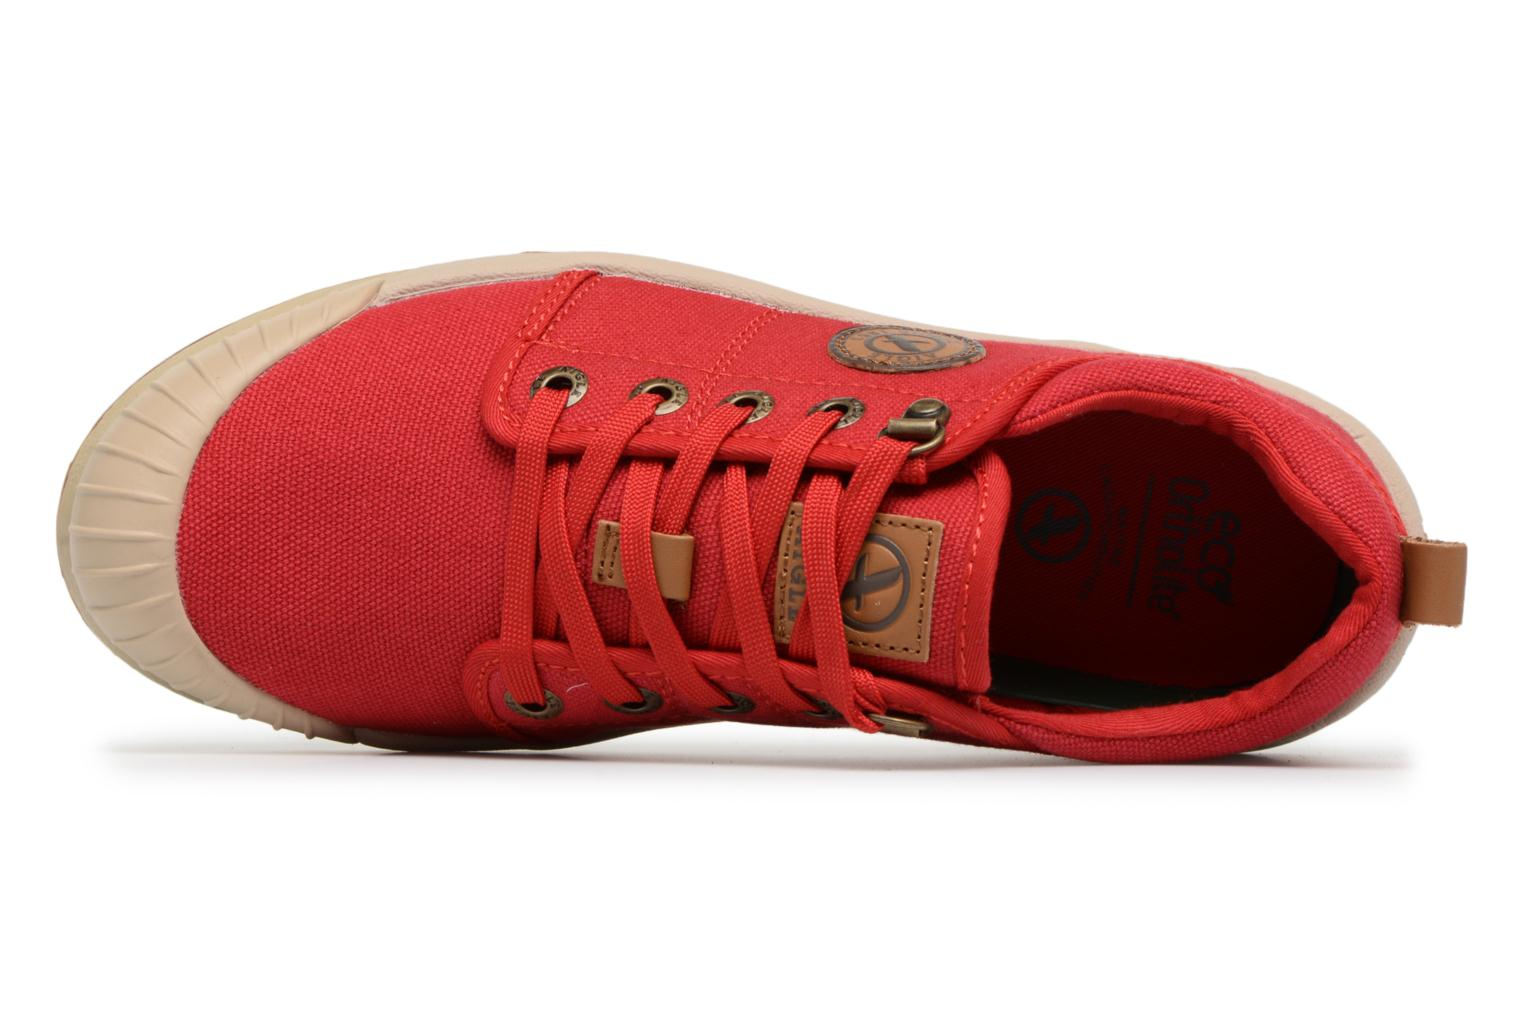 Tenere Light Low W Cvs Chili